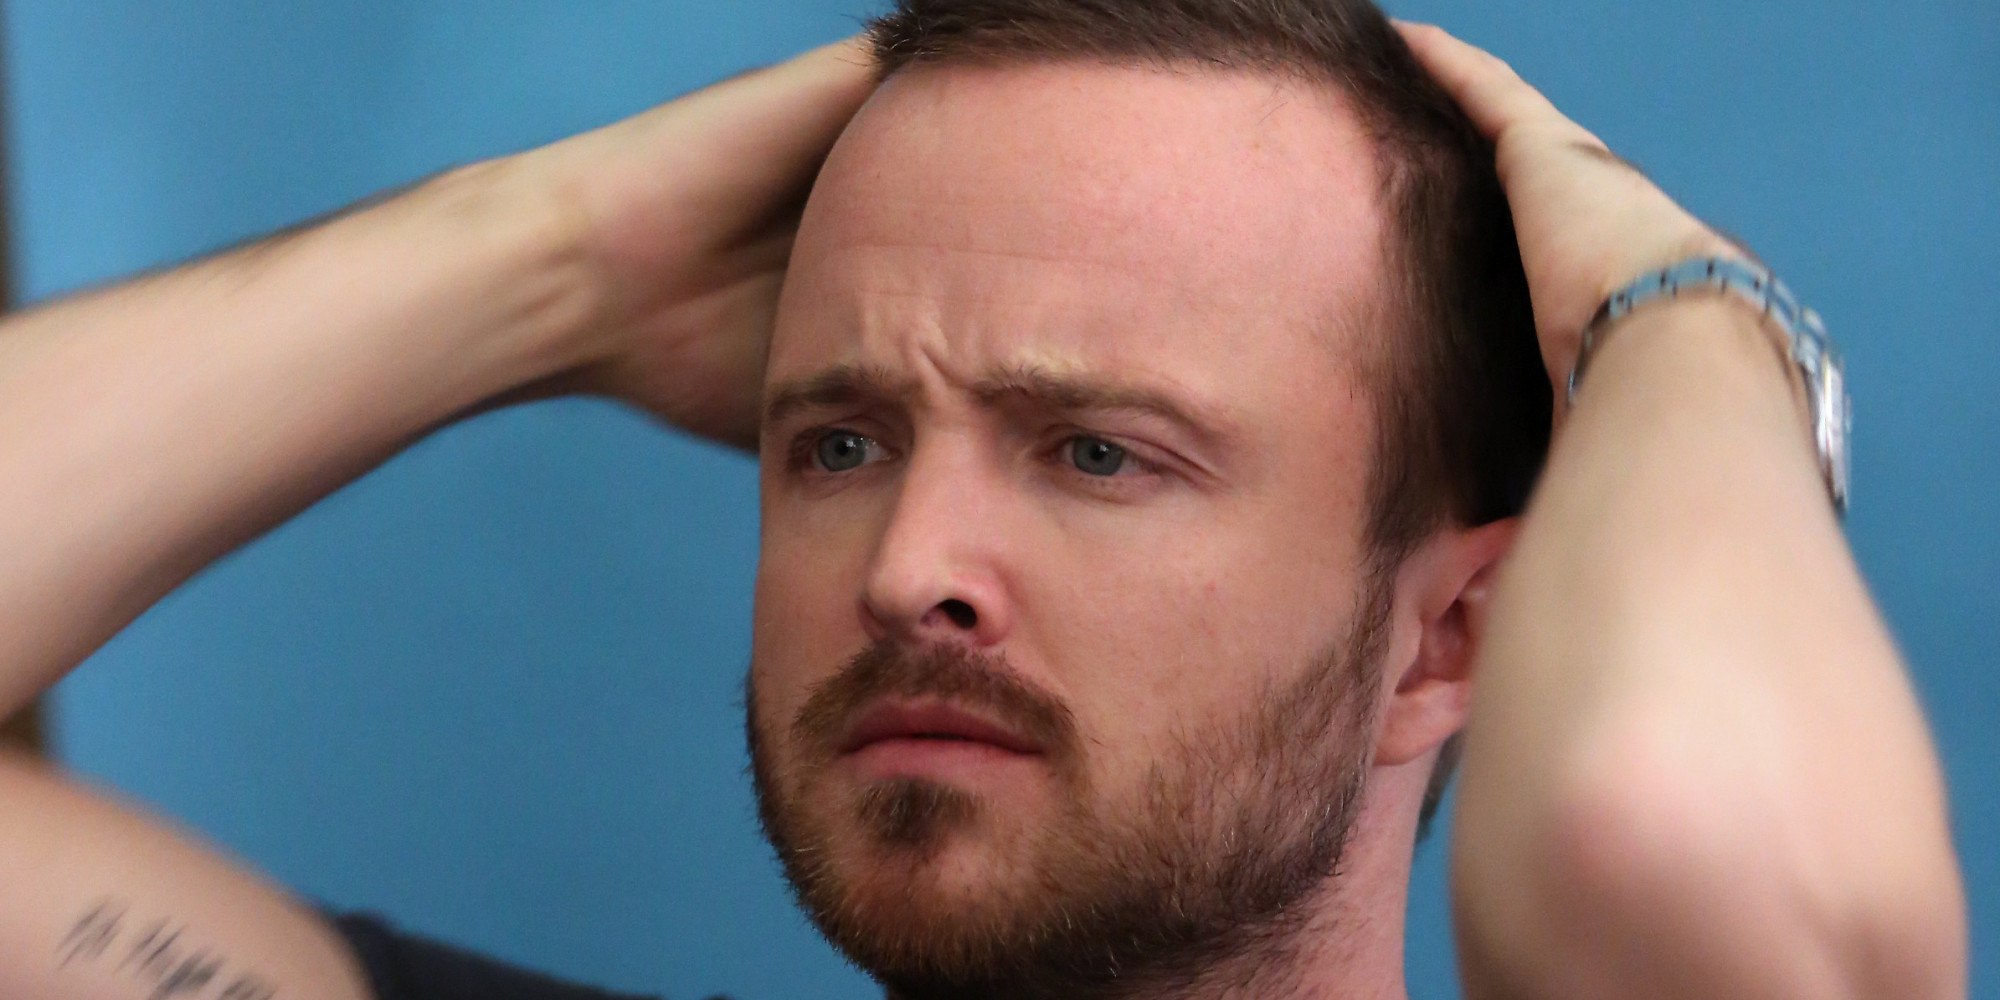 aaron paul фильмыaaron paul wife, aaron paul height, aaron paul tumblr, aaron paul beach, aaron paul gif, aaron paul tattoo, aaron paul фильмография, aaron paul twitter, aaron paul need for speed, aaron paul poker, aaron paul vk, aaron paul and bryan cranston, aaron paul net worth, aaron paul the path, aaron paul perez, aaron paul wedding, aaron paul фильмы, aaron paul films, aaron paul png, aaron paul korn